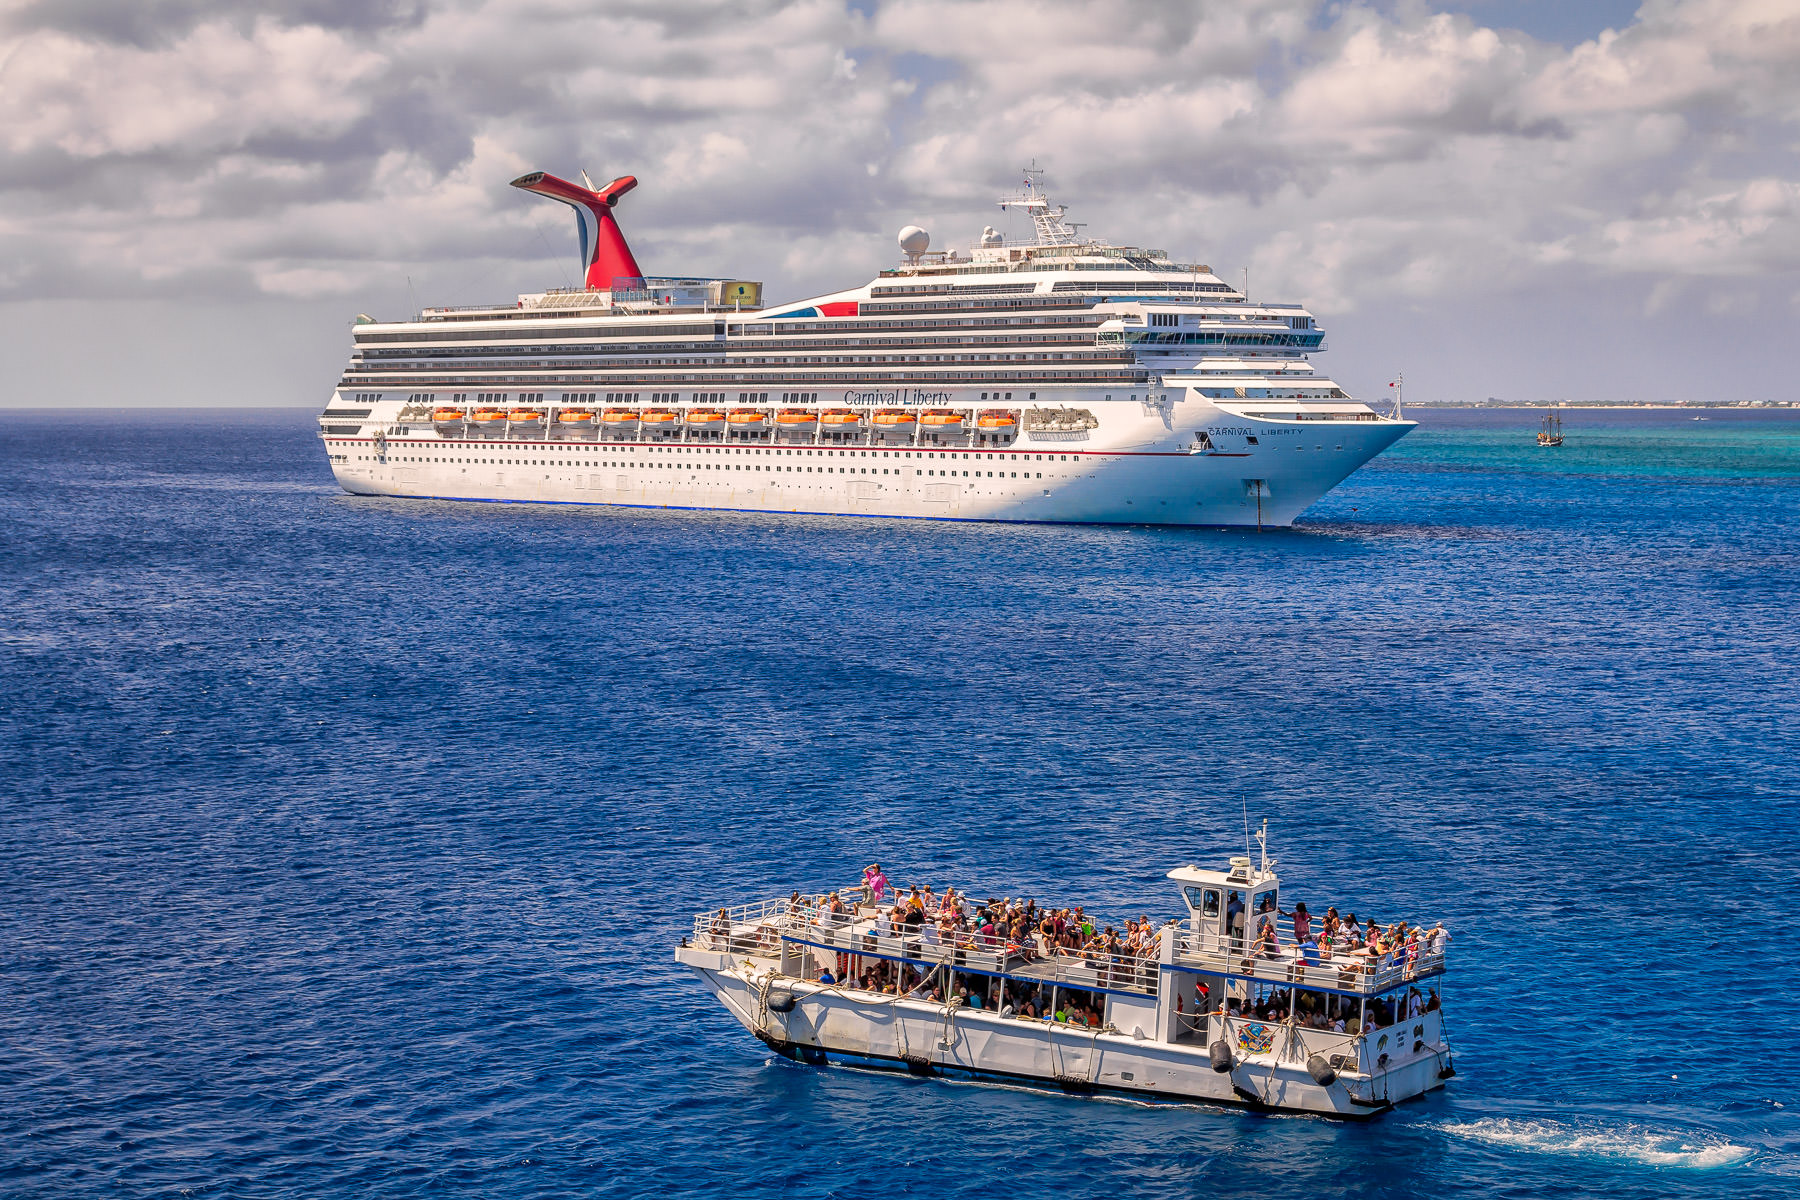 A cruise ship tender—used to transport passengers between a port and a ship when the ship is unable to dock directly due to shallow water or other reasons—passes the Carnival Liberty just off the coast of George Town, Grand Cayman.